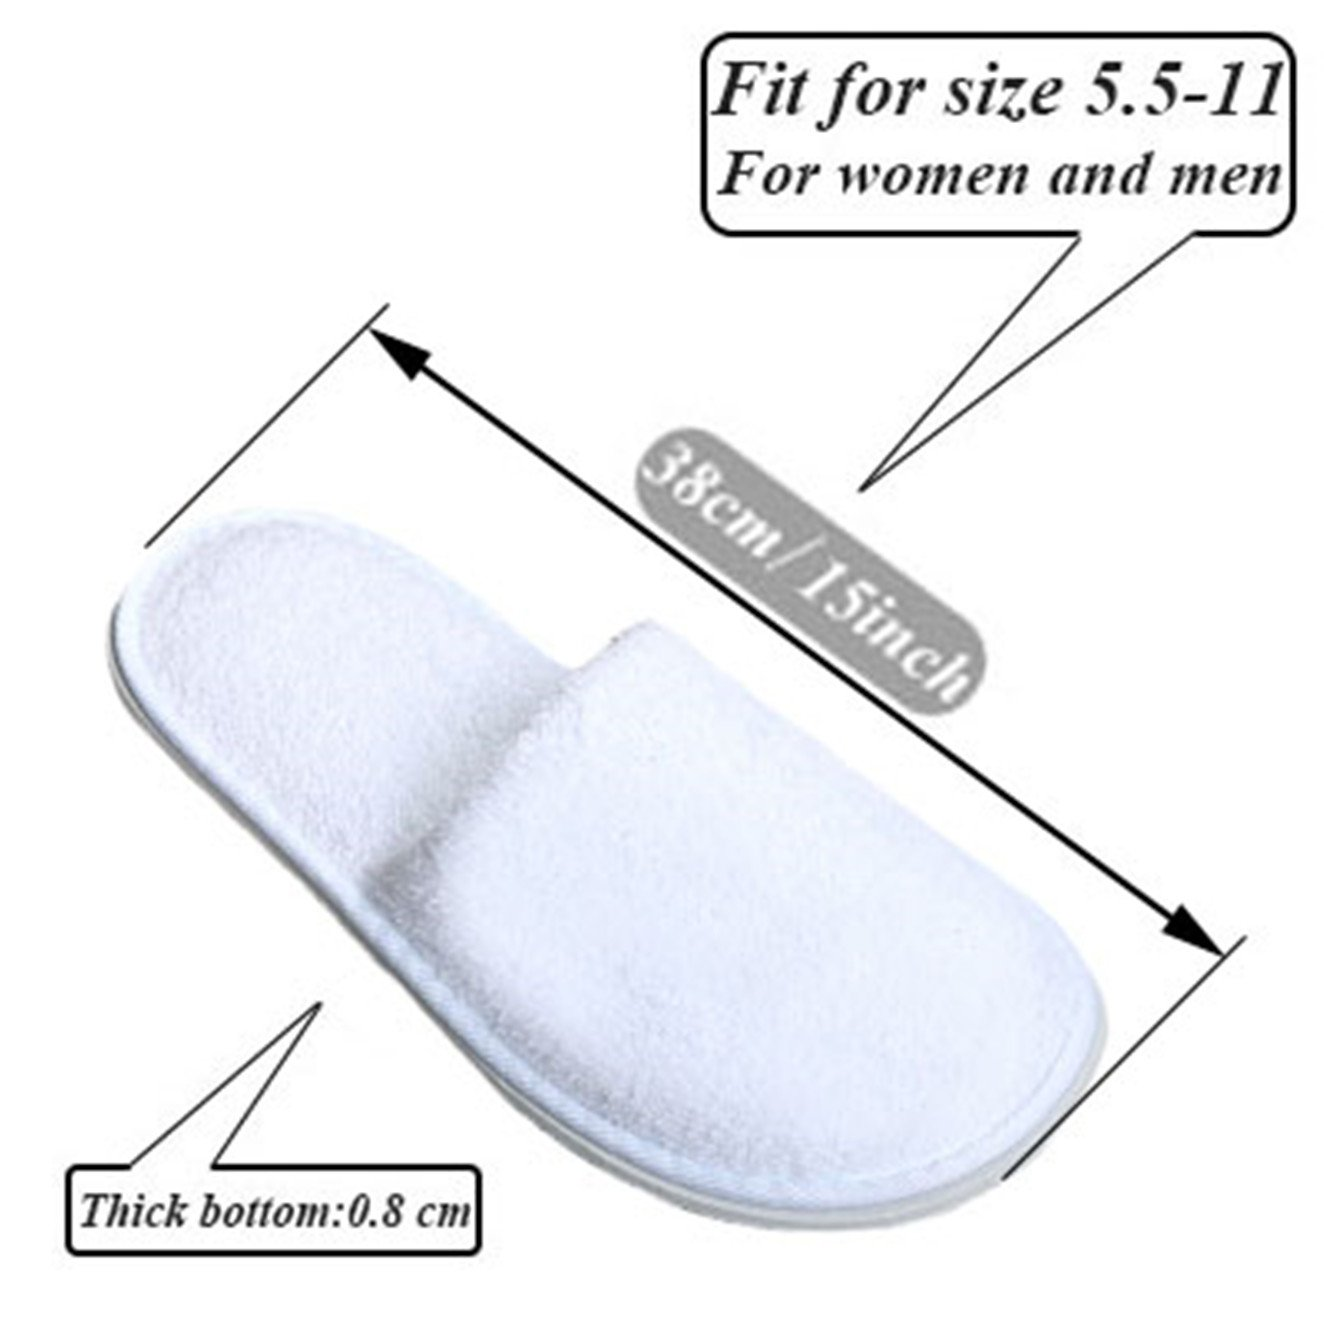 5 Pair of Close Toe Breathable Slippers, Spa Slippers for Guests, Hotel, Travel, Unisex Universal Size Washable and Non-Disposable